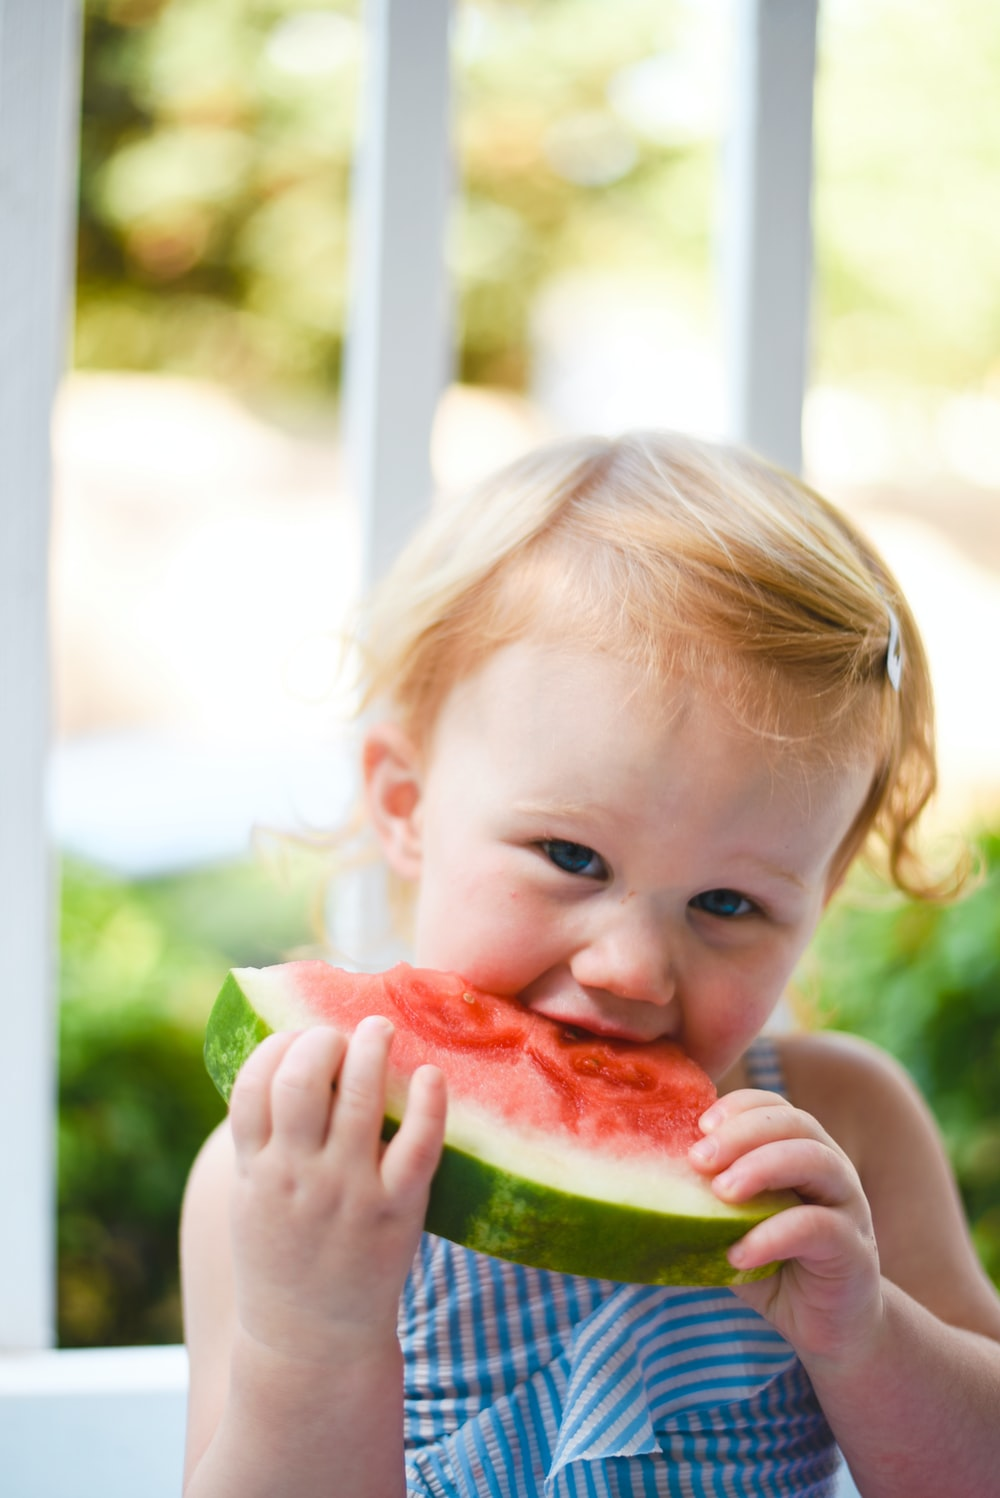 girl eating watermelon close-up photography